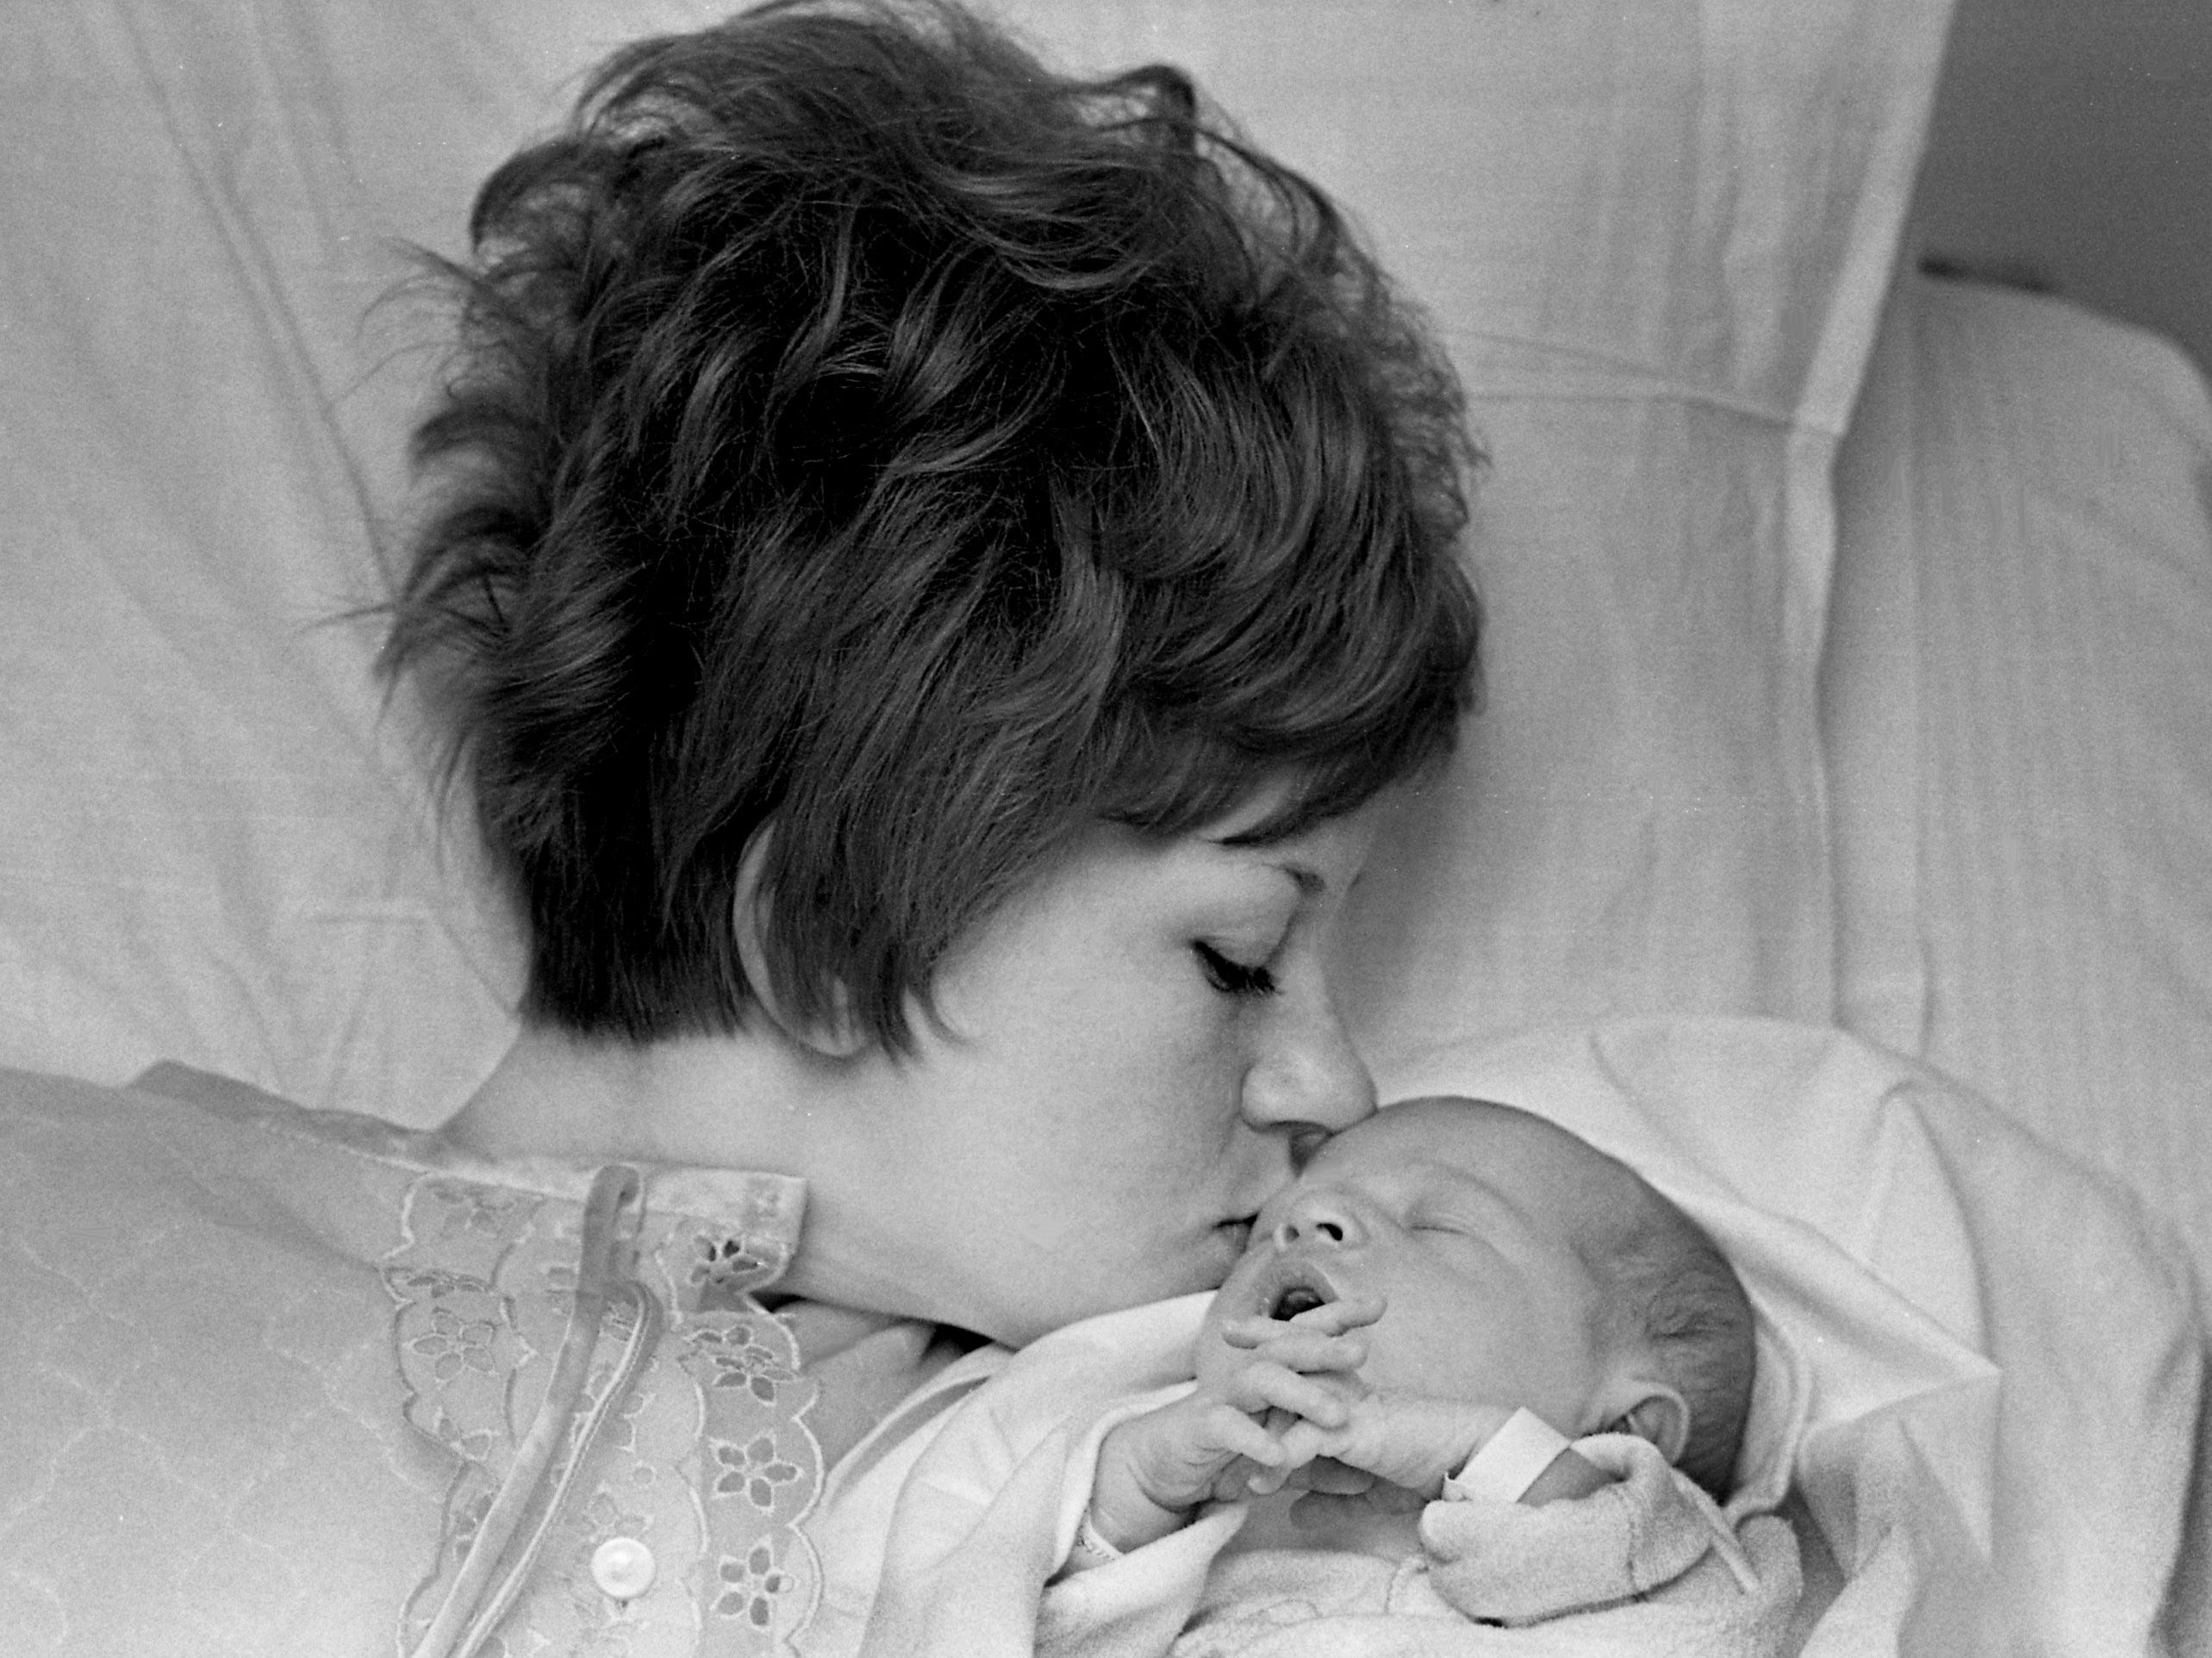 Mrs. Charles Ray White of Nashville welcomes her son, the first baby boy born in Nashville, with a kiss at Nashville Memorial Hospital on Jan. 1, 1969. The baby arrived at 3:03 a.m.